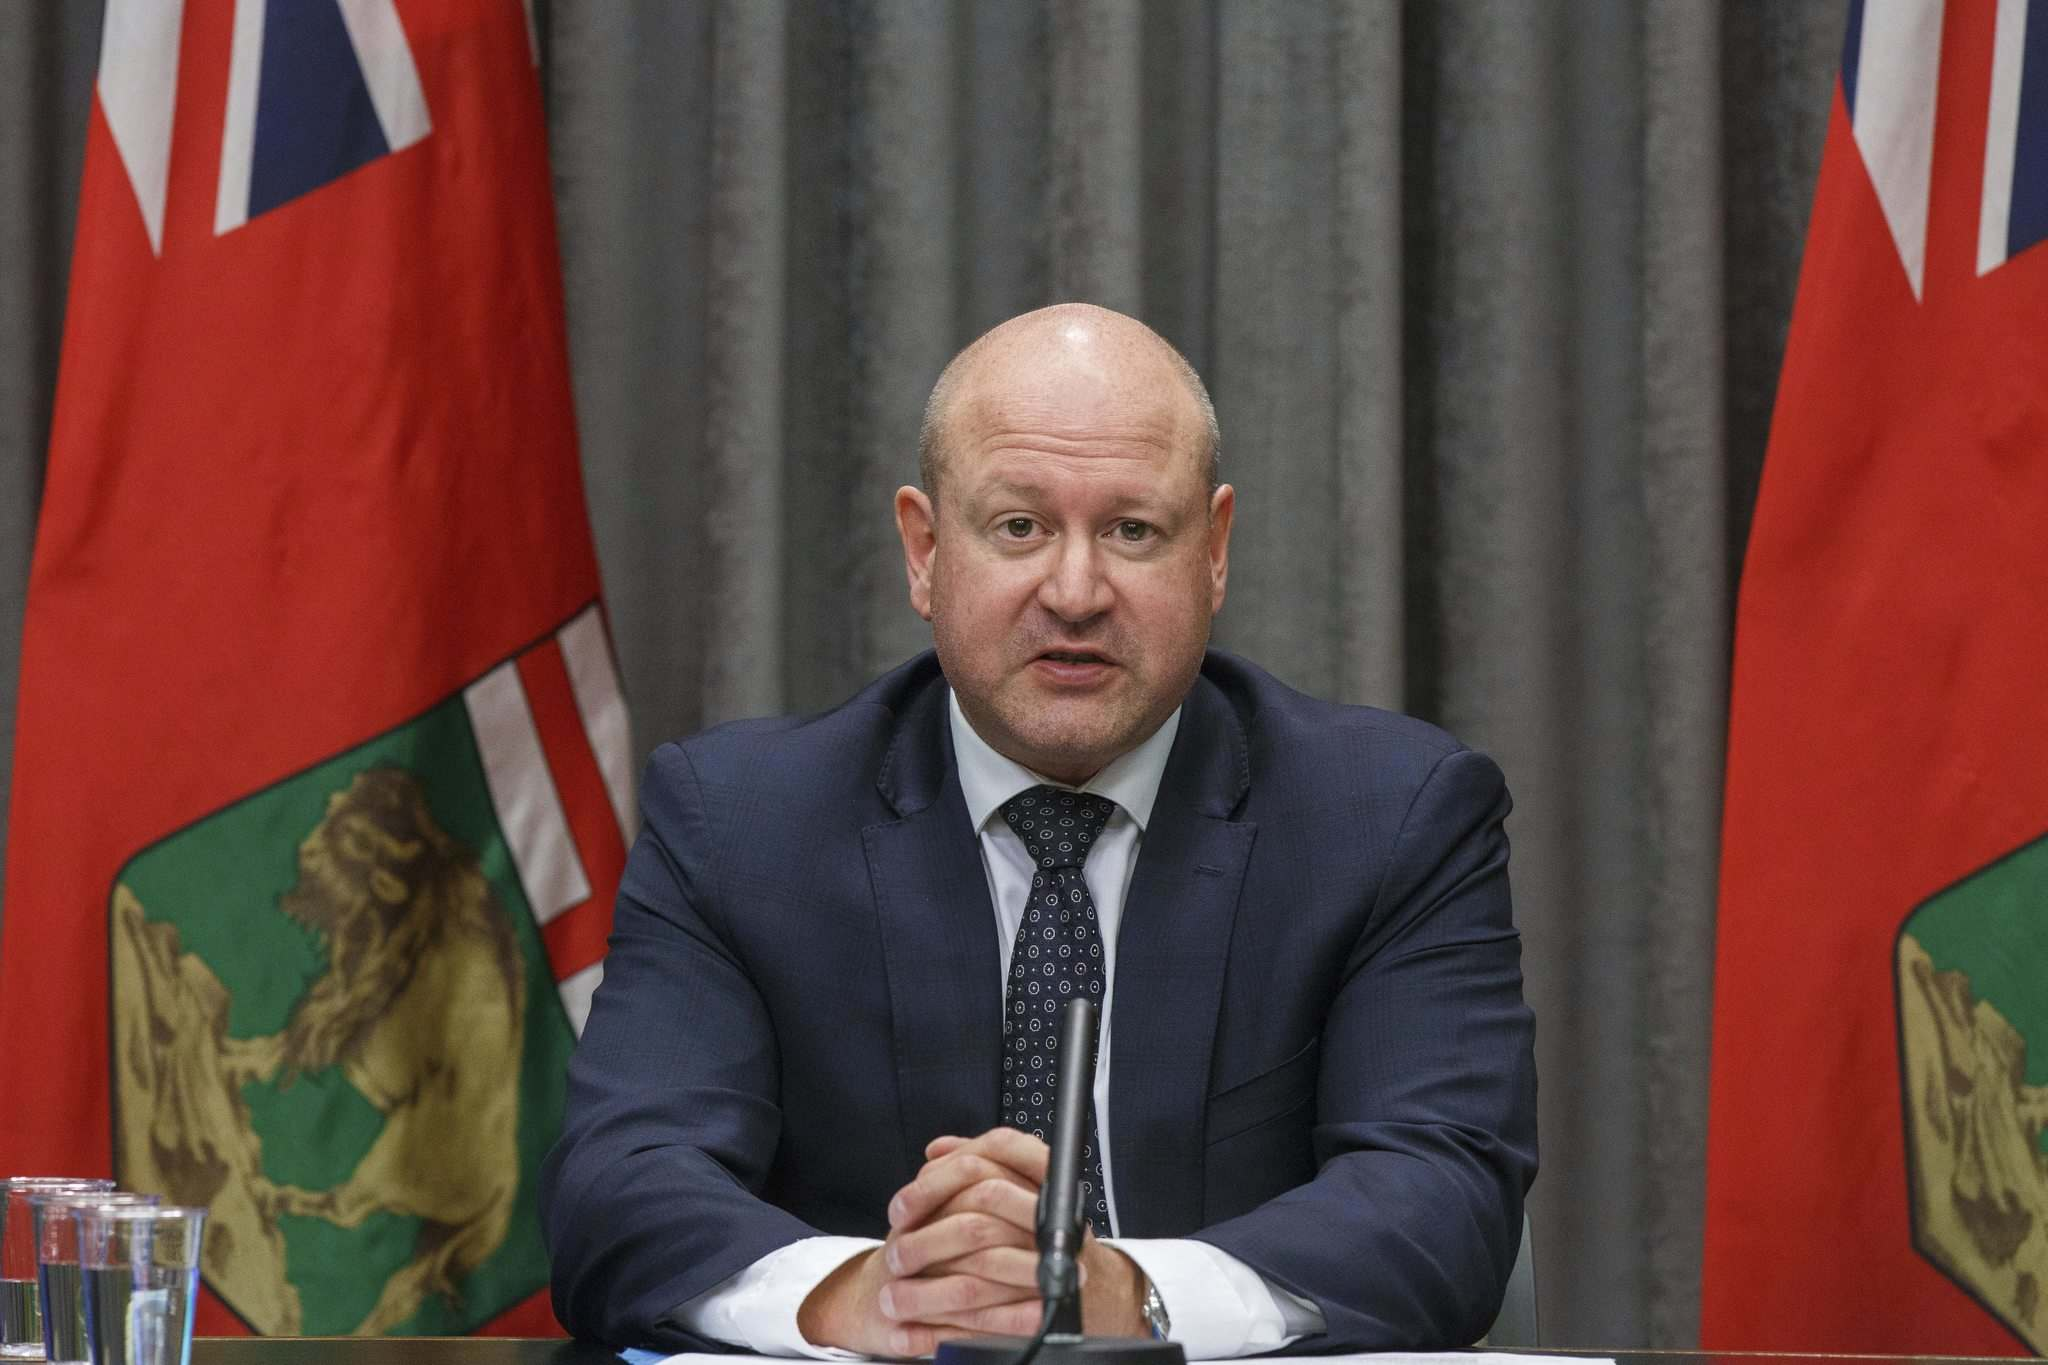 Chief provincial public health officer Dr. Brent Roussin says people should plan to stay home for Christmas and Hanukkah. (Mike Deal / Winnipeg Free Press files)